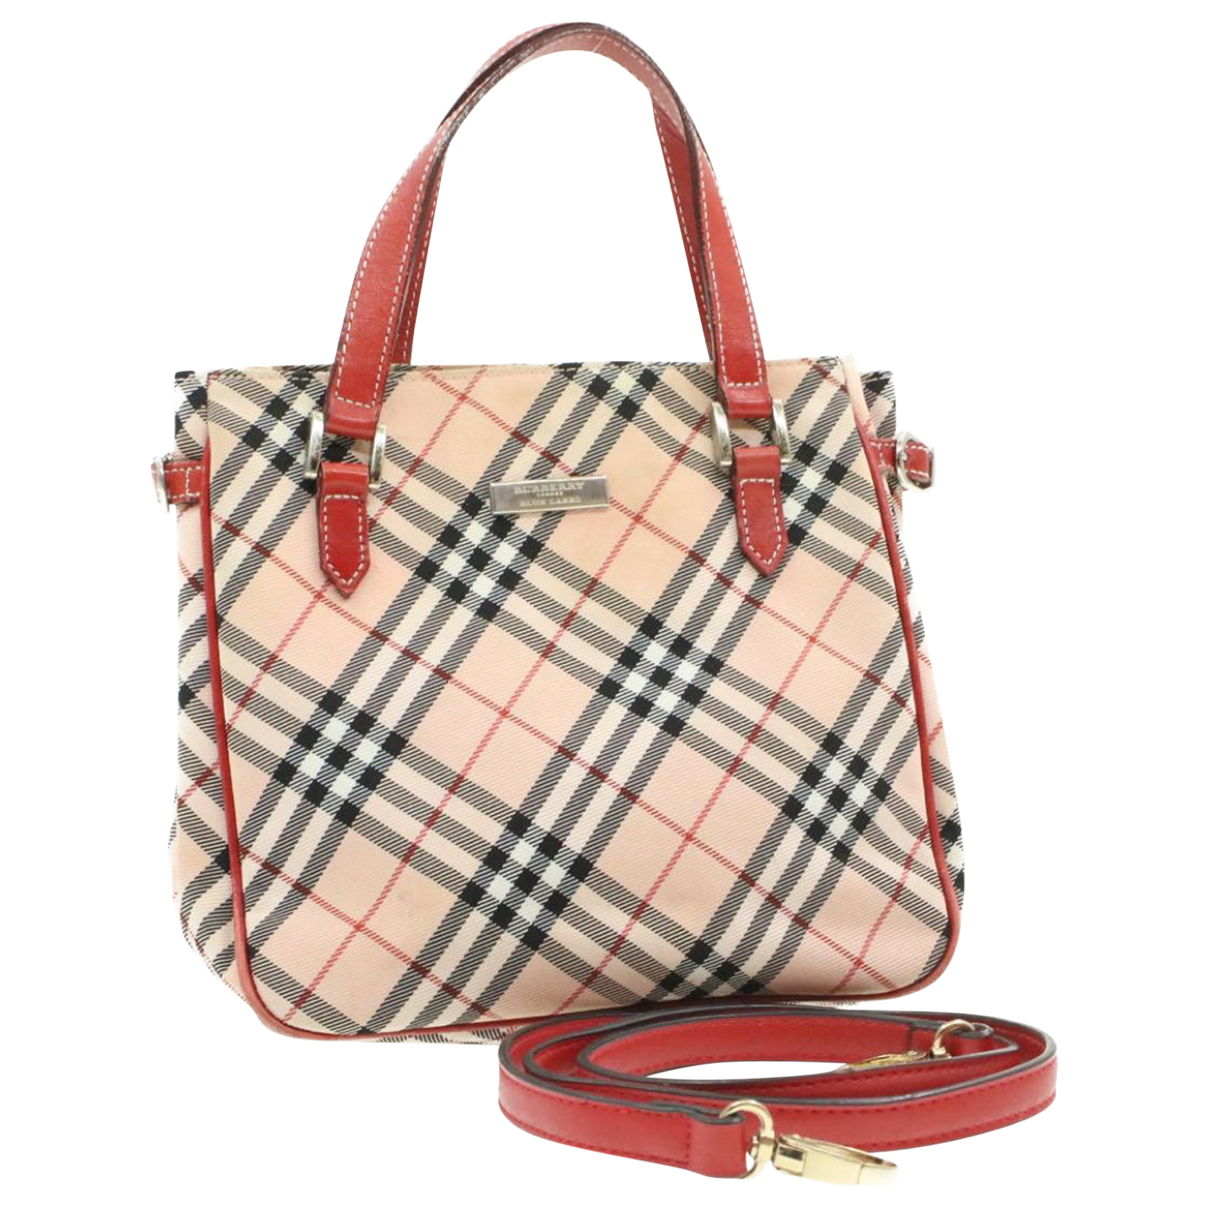 Burberry \N Red Cloth handbag for Women \N